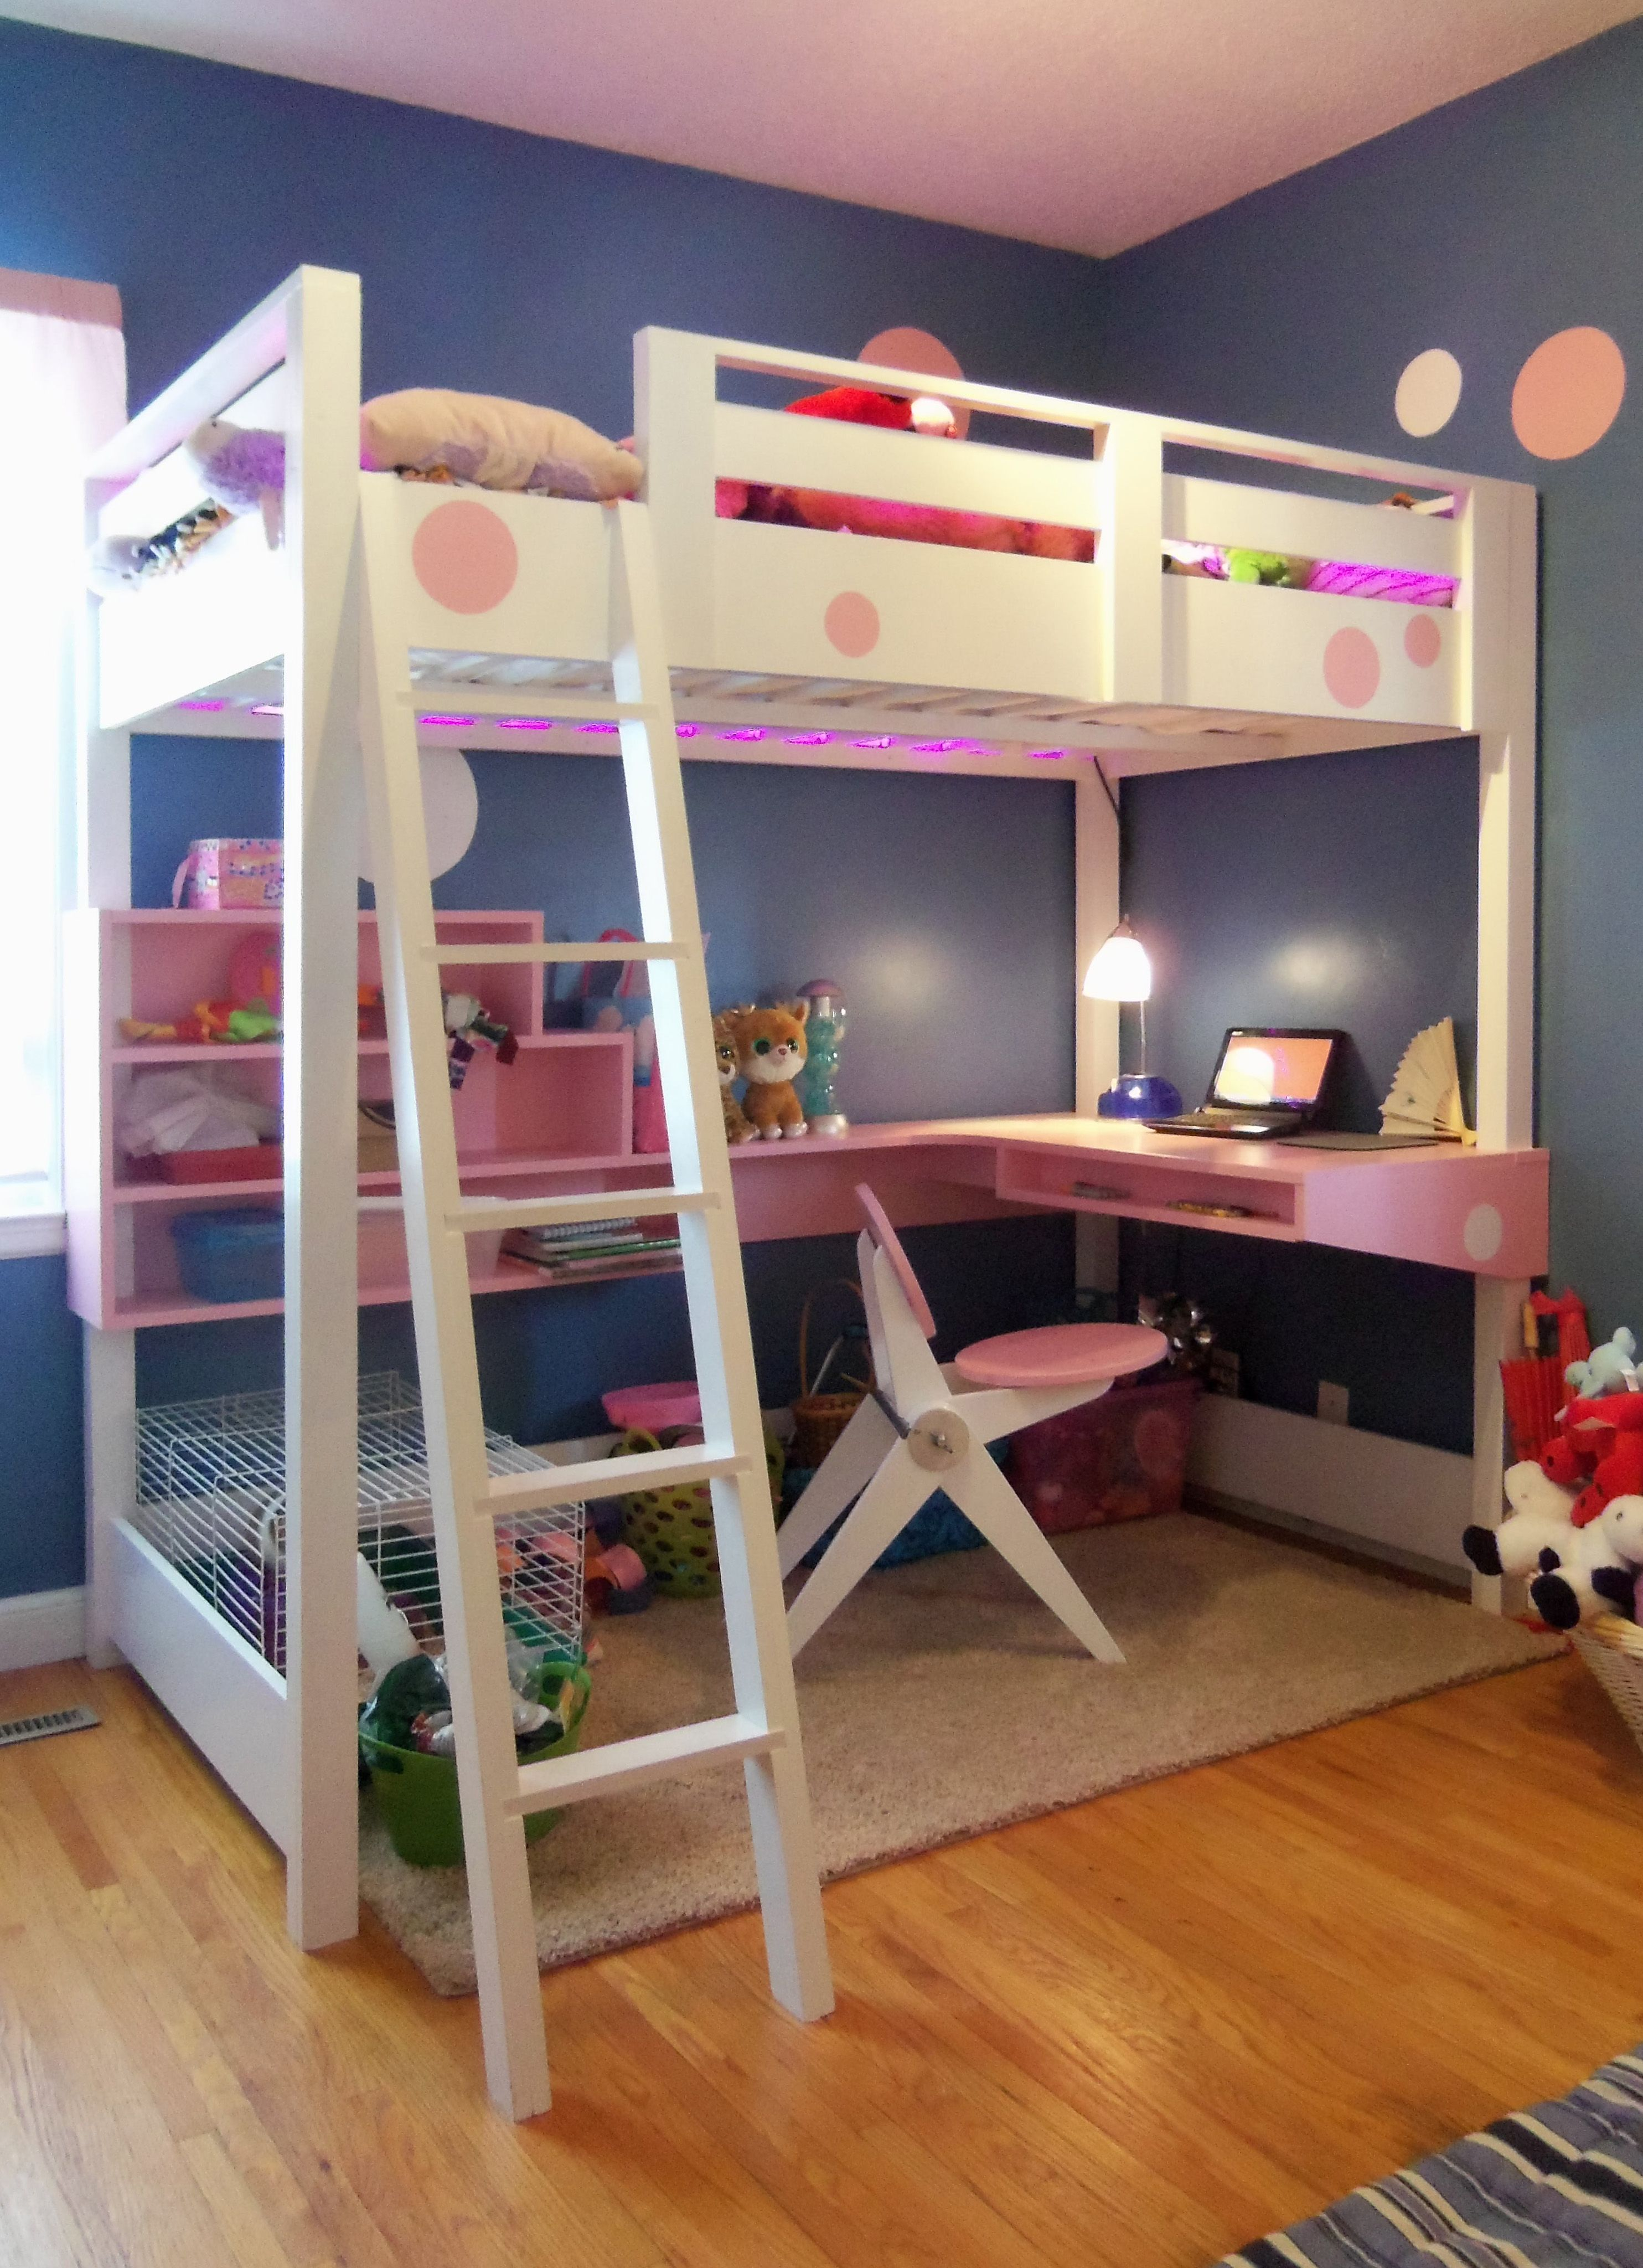 loftbed storage ideas  Loft bed with desk  Do It Yourself Home